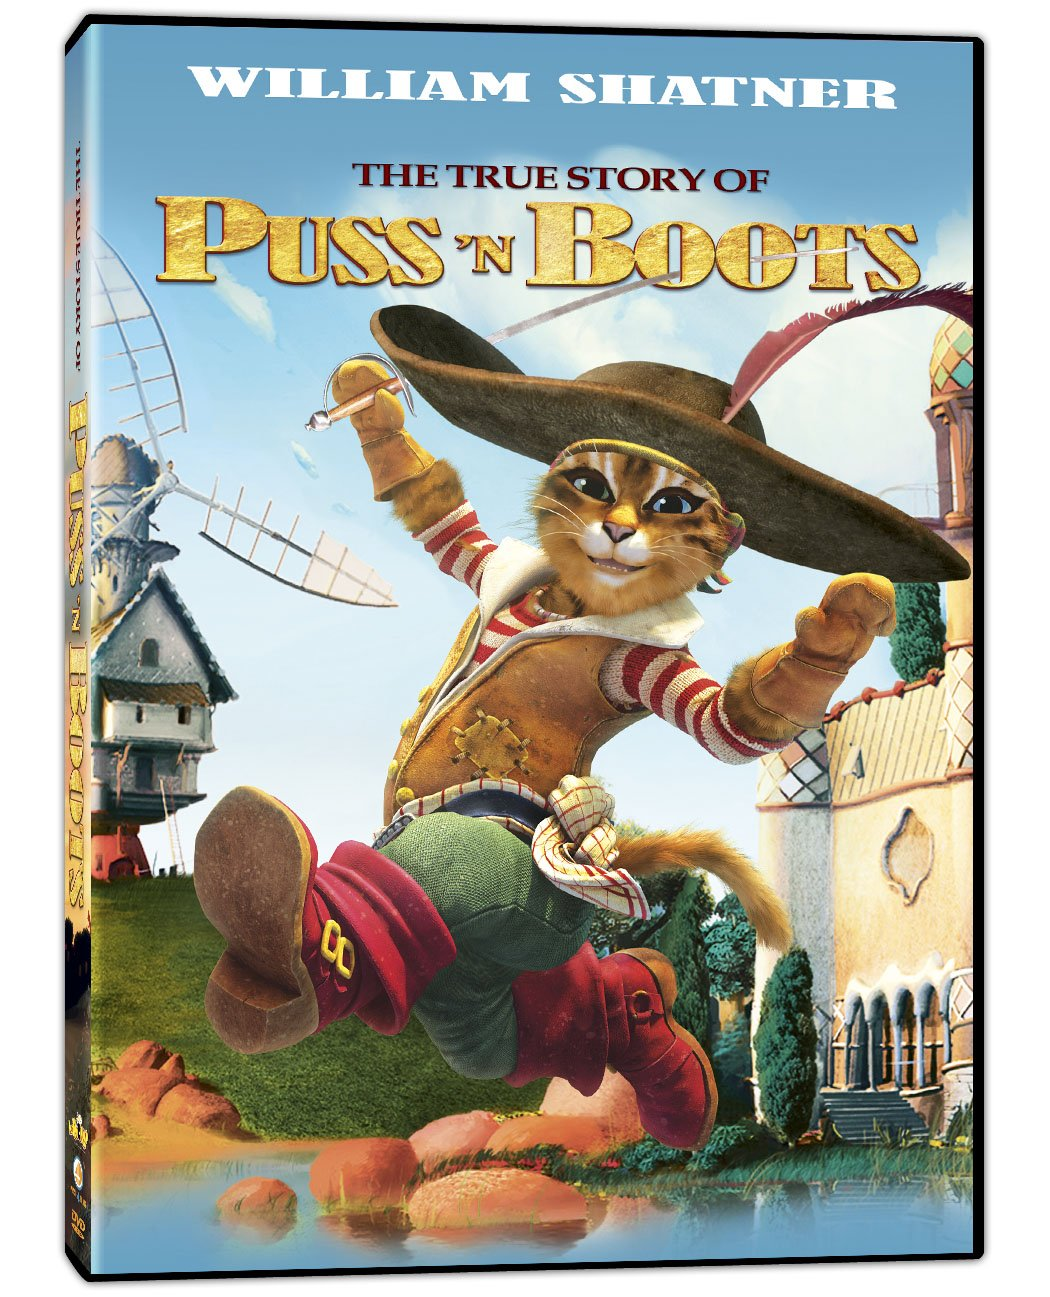 The True Story Of Puss 'N Boots movie review